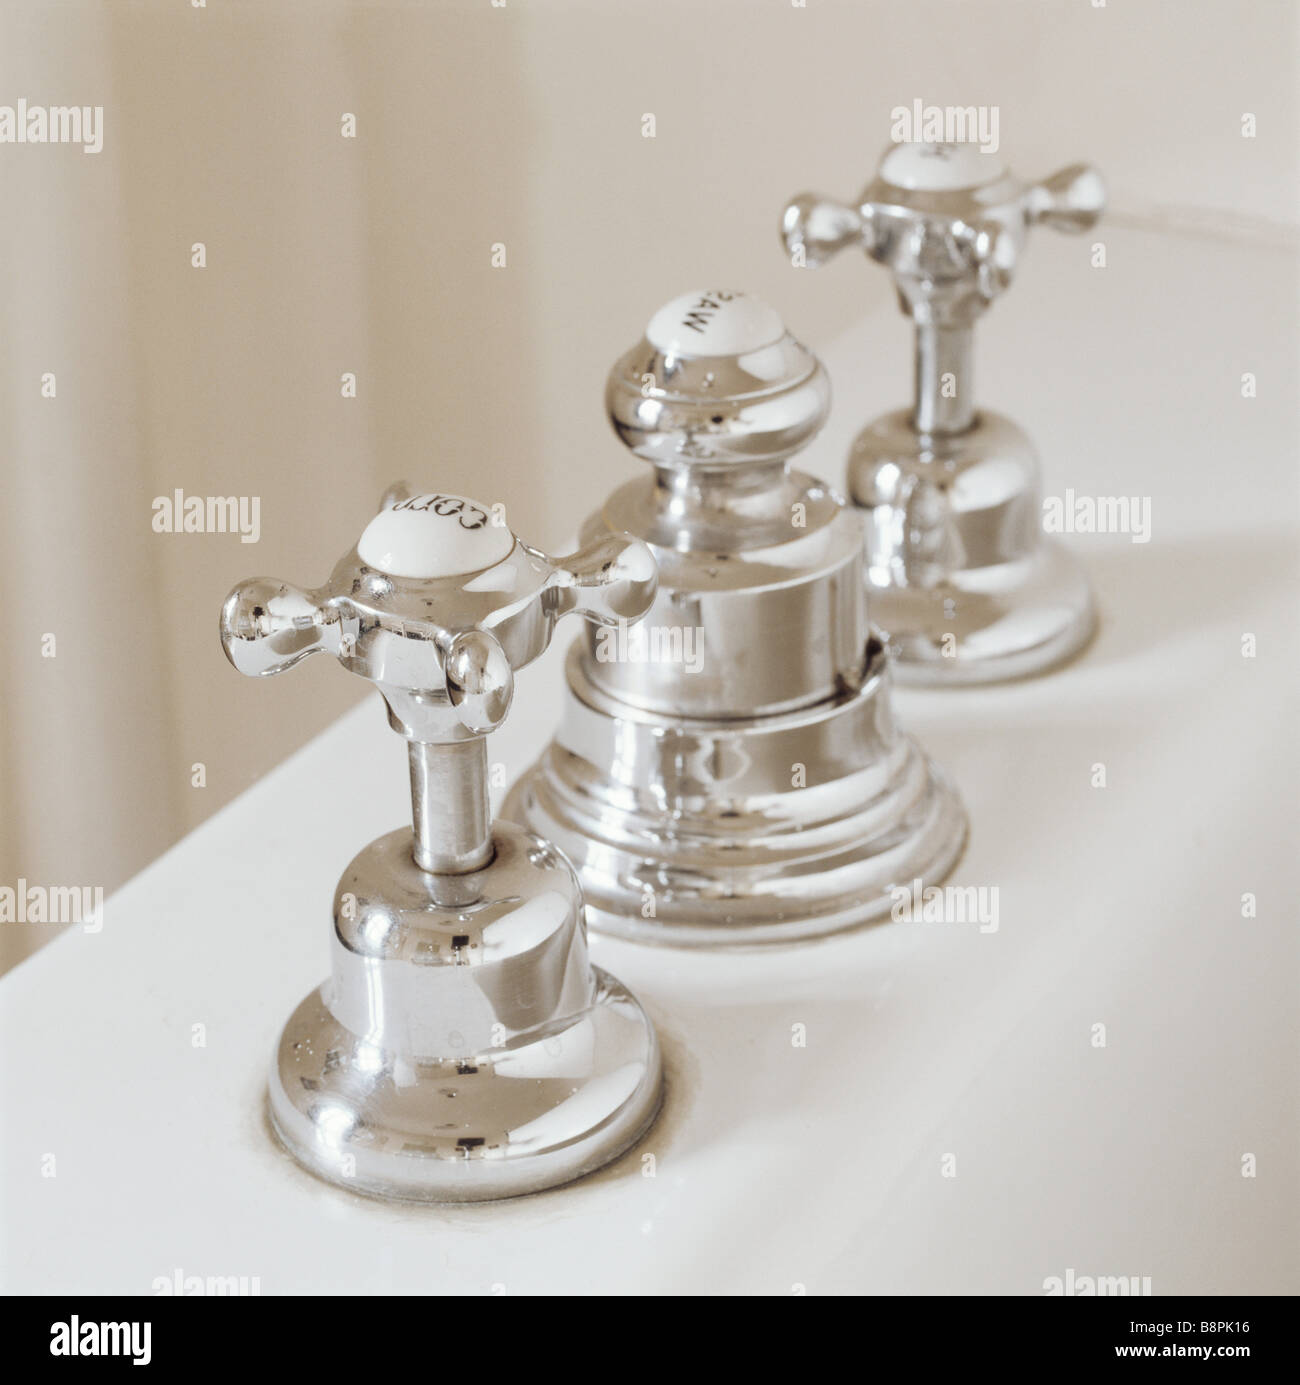 Stock Photo   Taps in the Ship Bathroom Lord Fairhaven was one of the first English country house owners to have chrome bathroom fittings. Taps In The Ship Bathroom Lord Fairhaven Was One Of The First